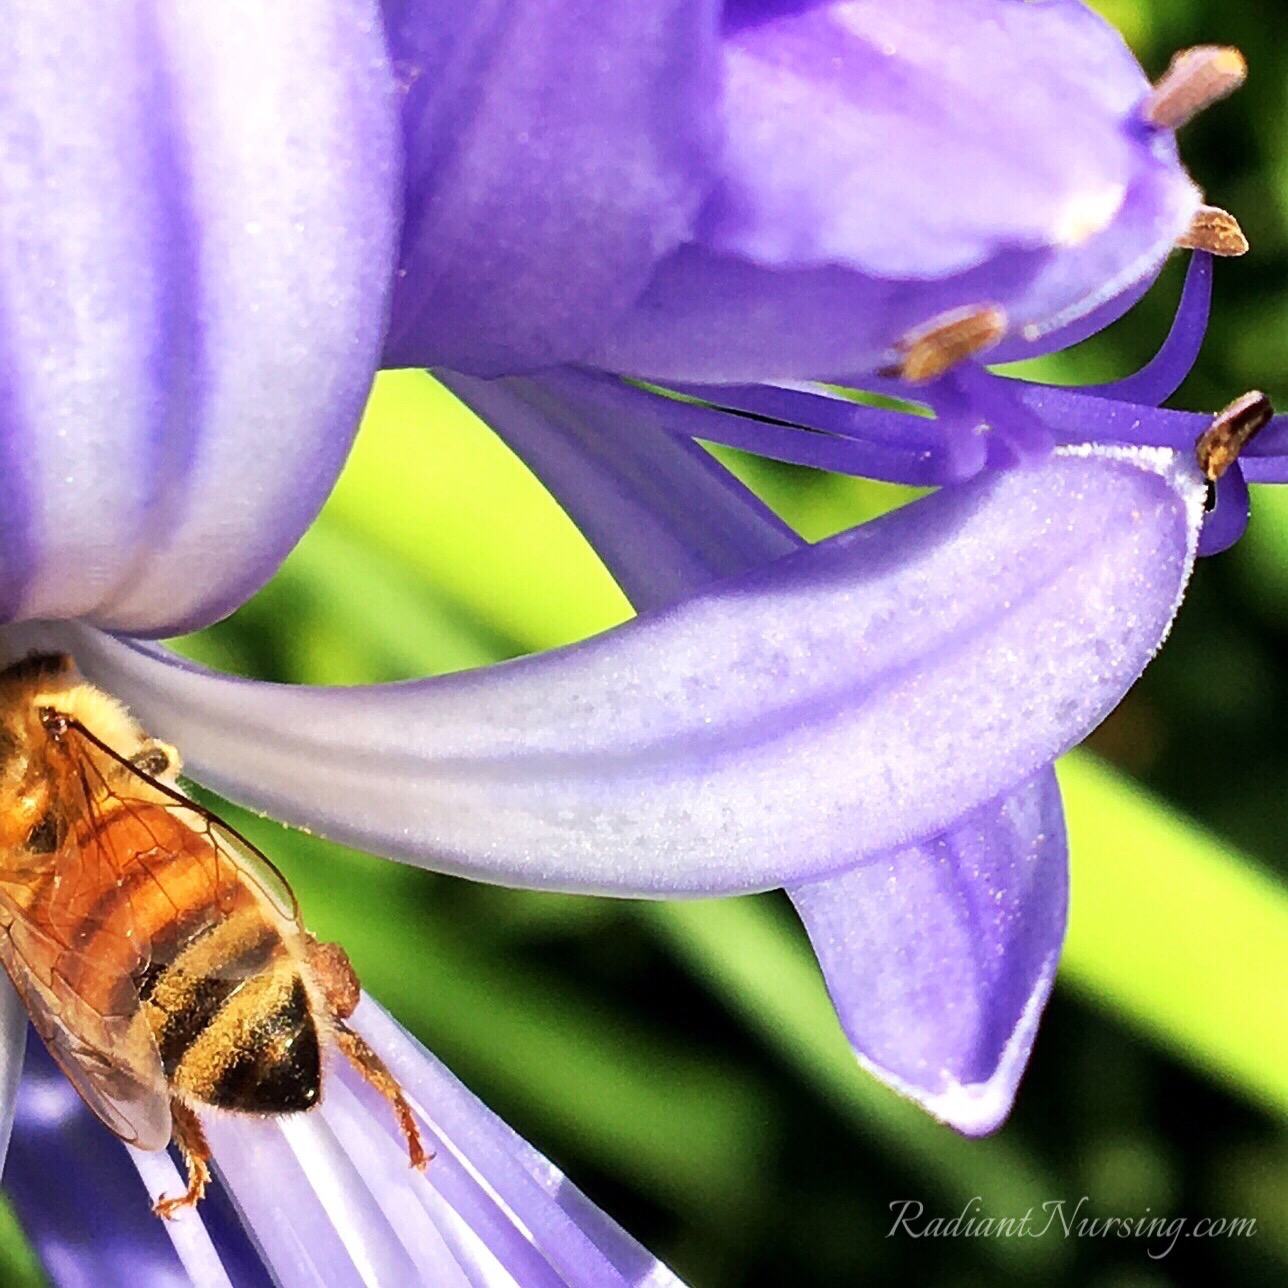 A golden honey bee checks out the nectar in a blossom of Agapanthus.